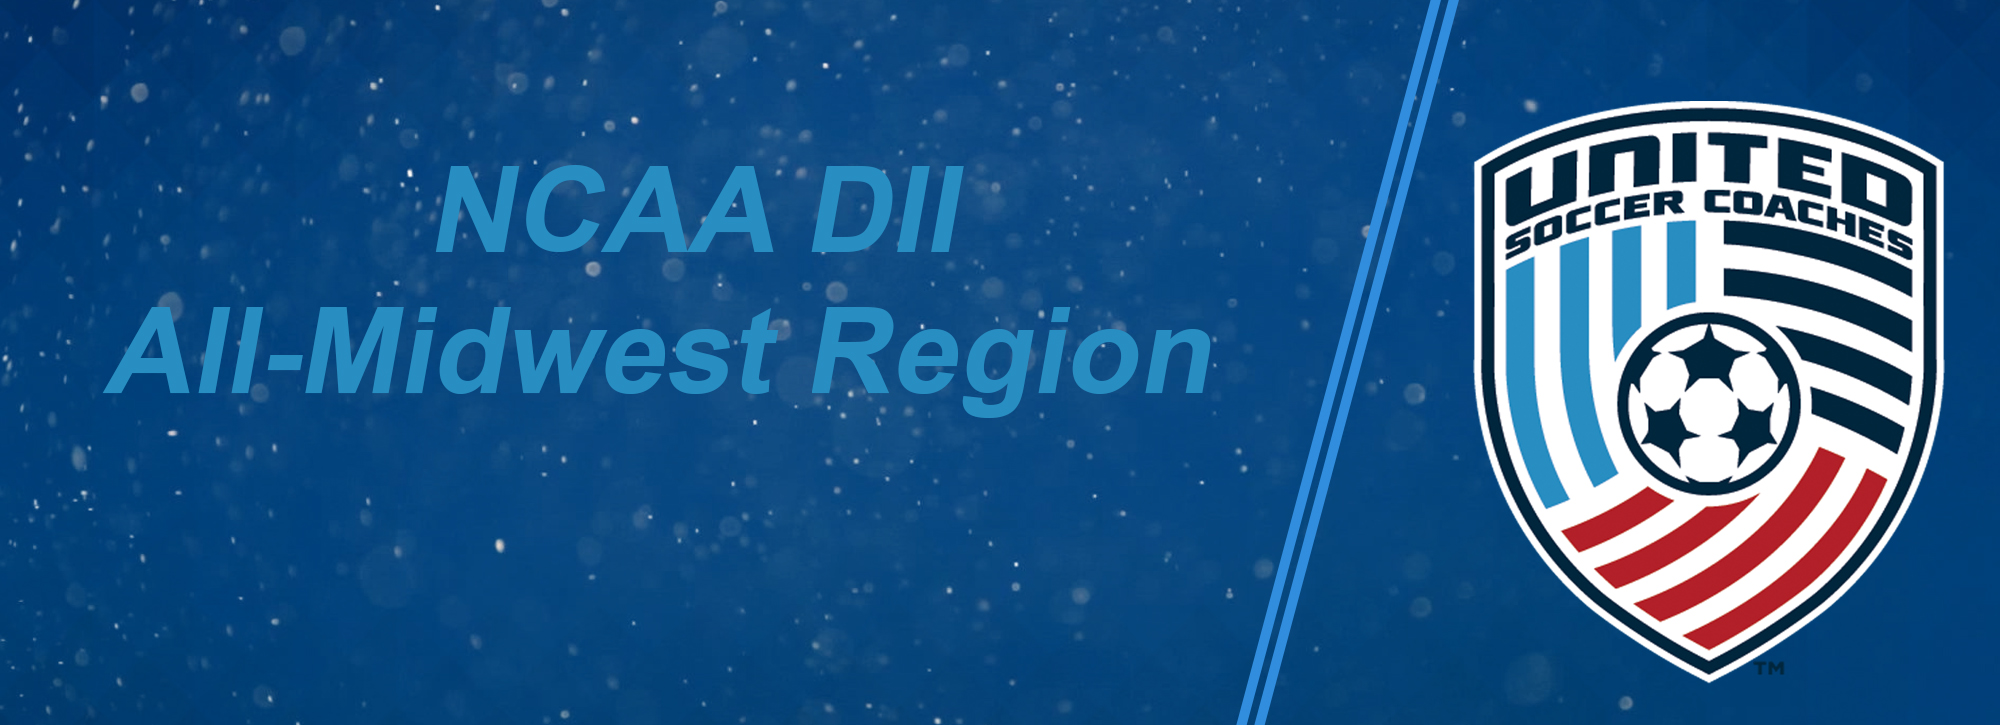 Eleven GLIAC men land on United Soccer All-Midwest Region Team